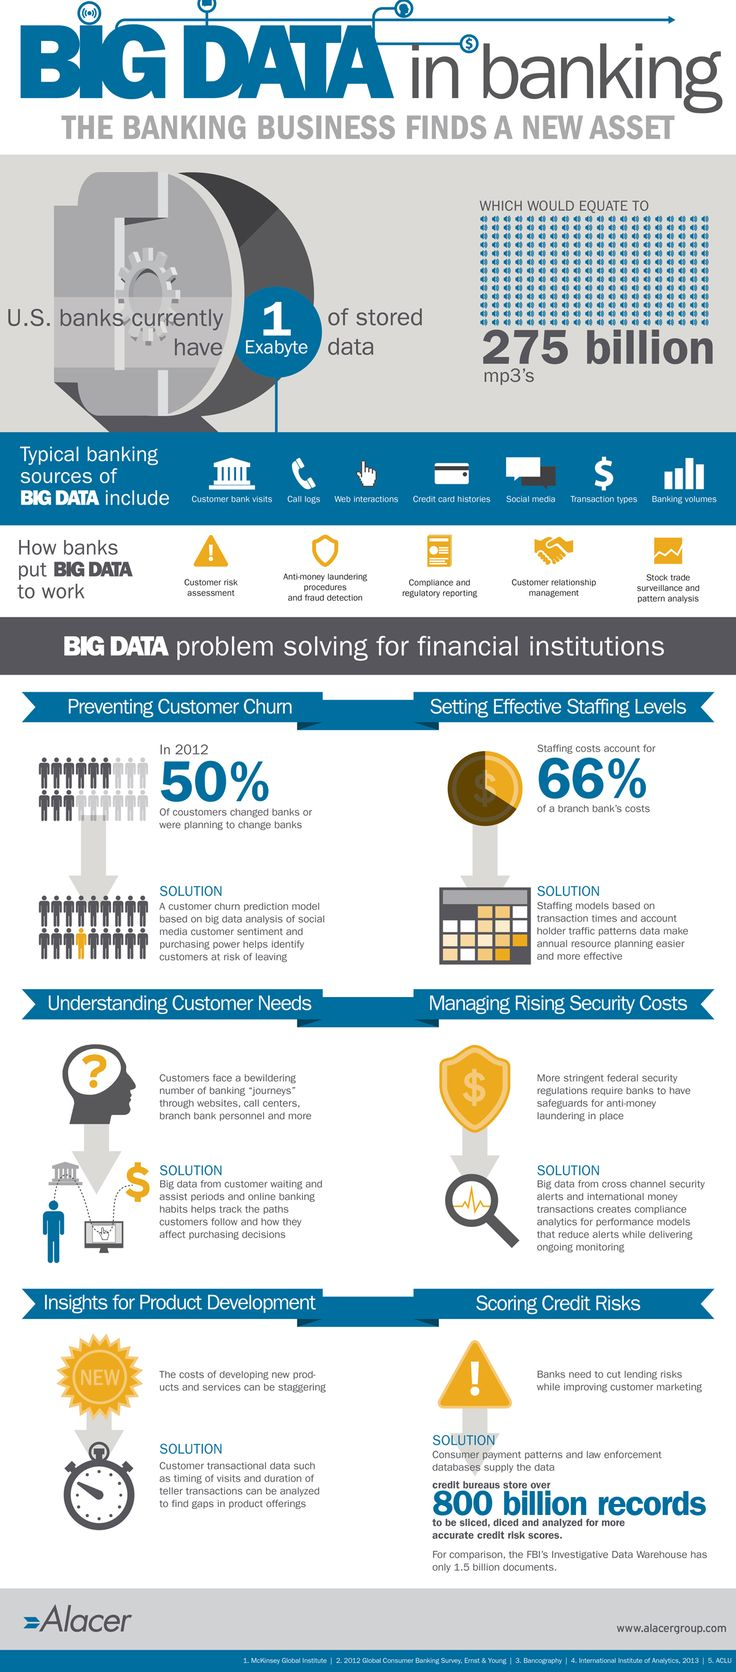 Big Data is Big Business in Banking @ Pinfographics